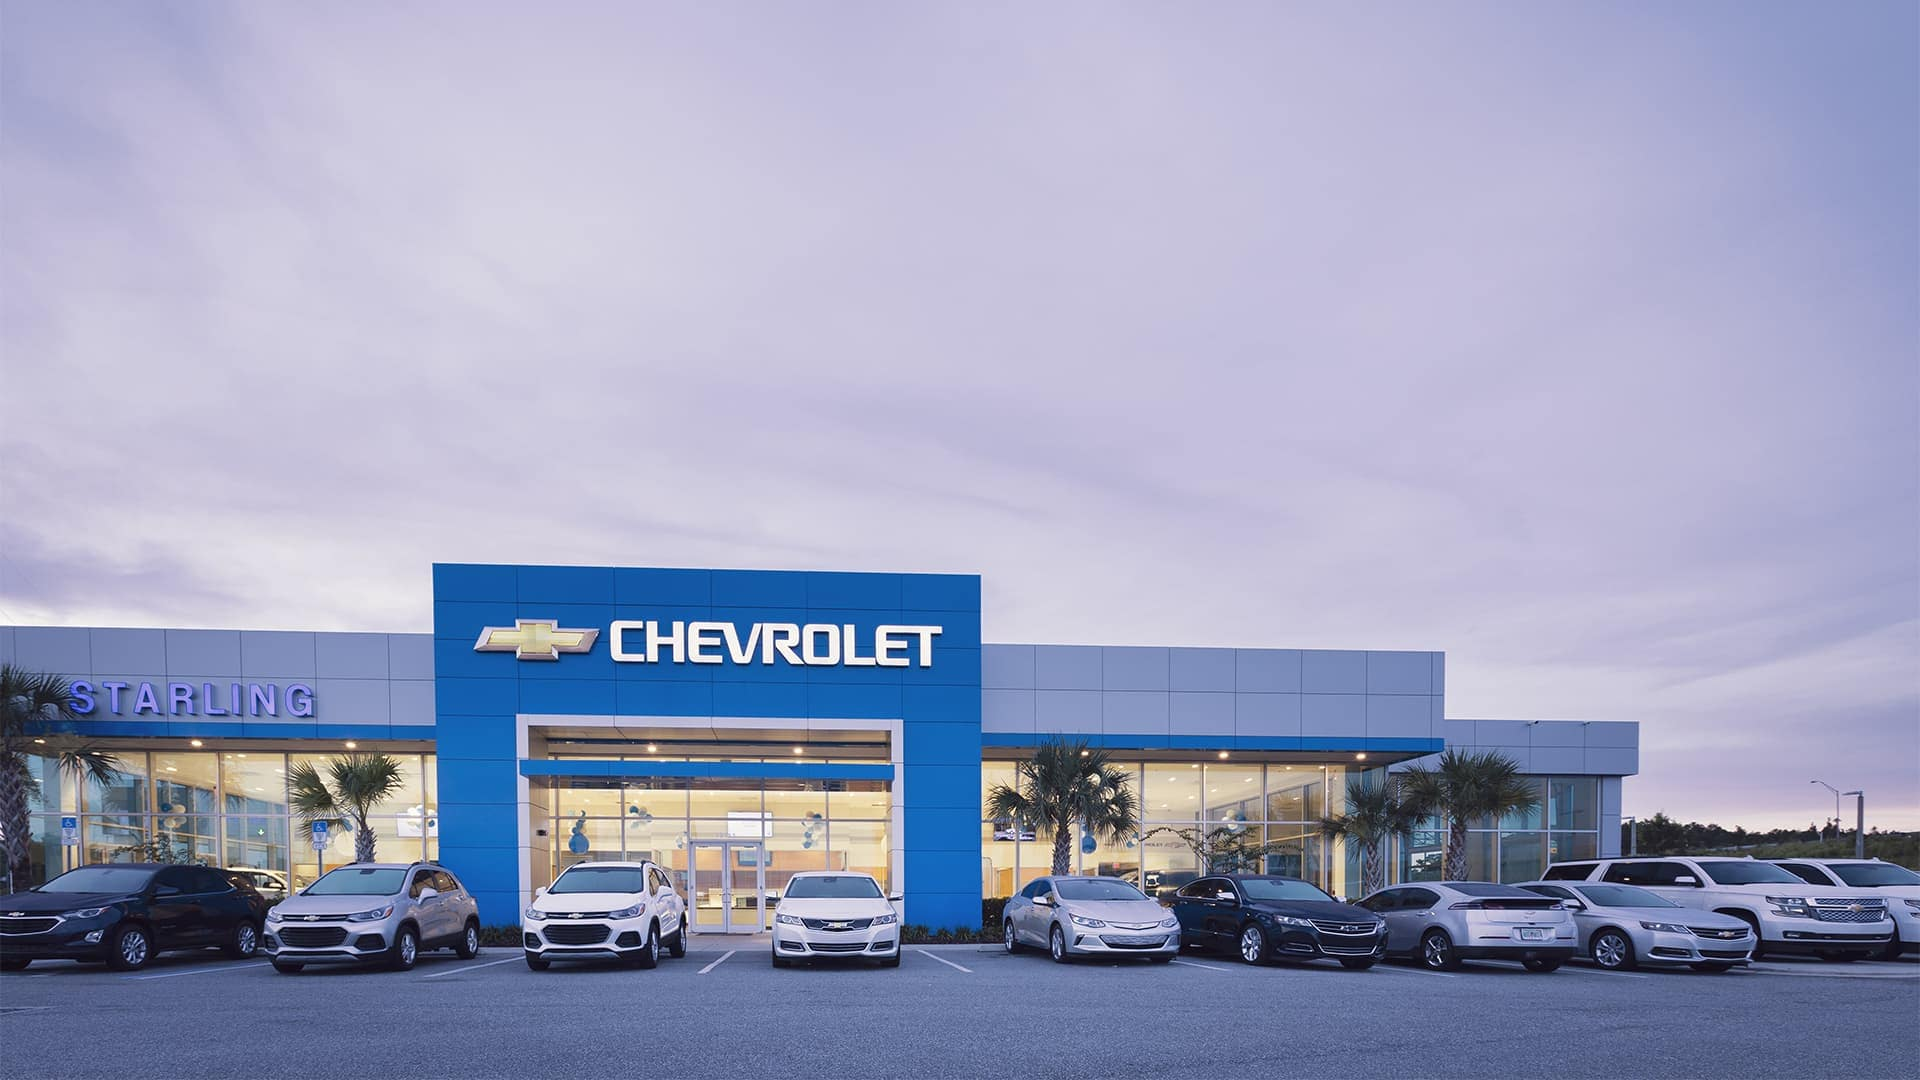 Starling Chevrolet | Chevrolet Dealer in Orlando, FL